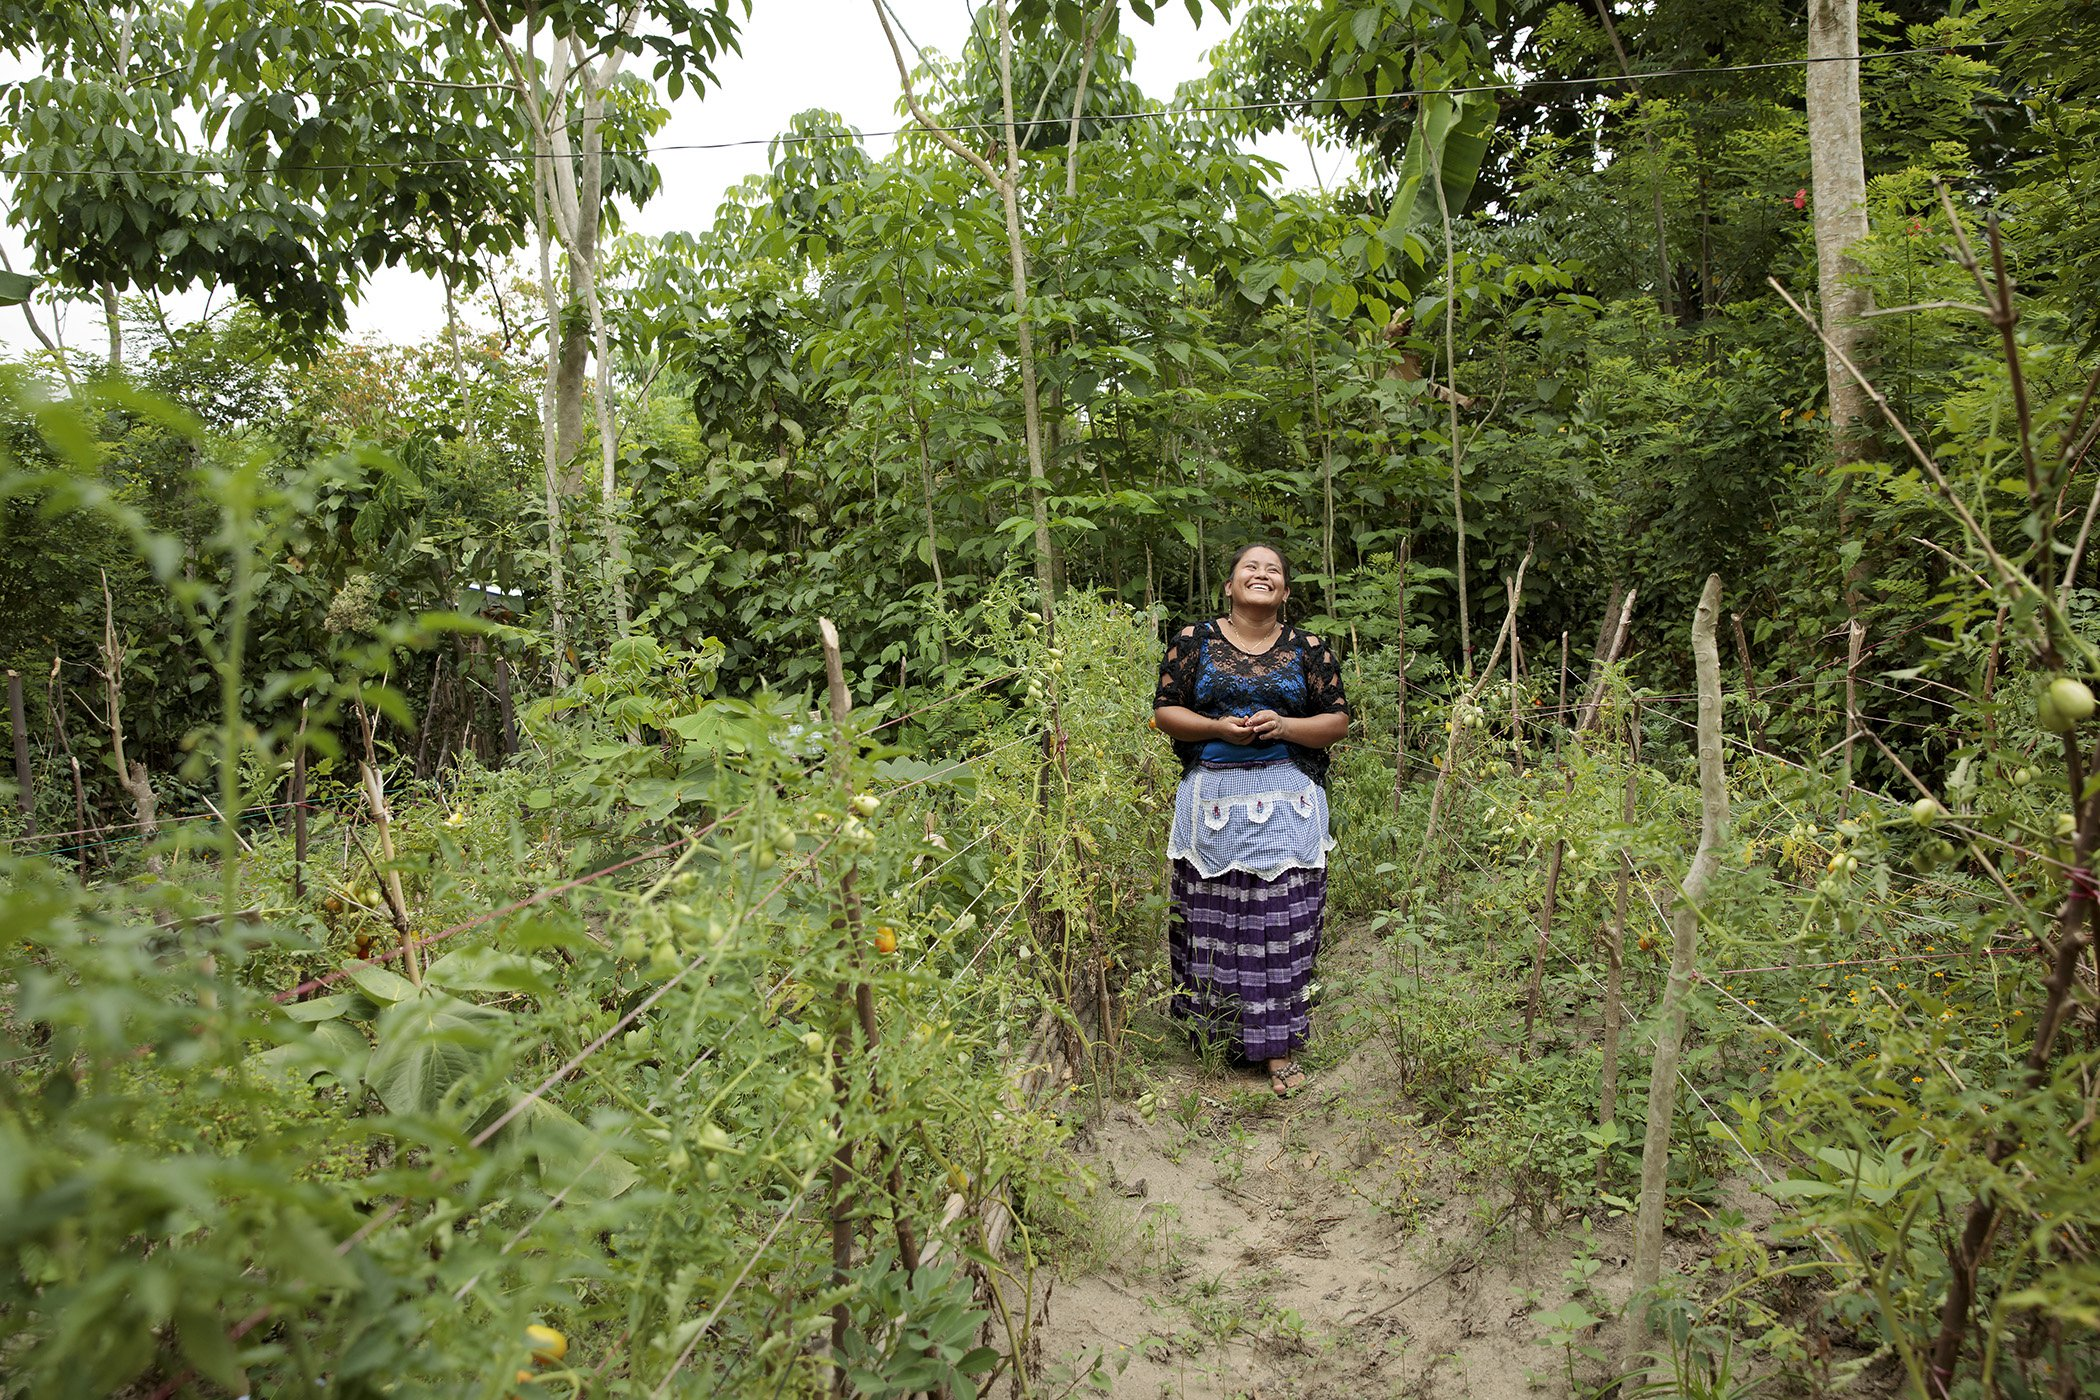 Women-Climate-Change-Agriculture-002.jpg